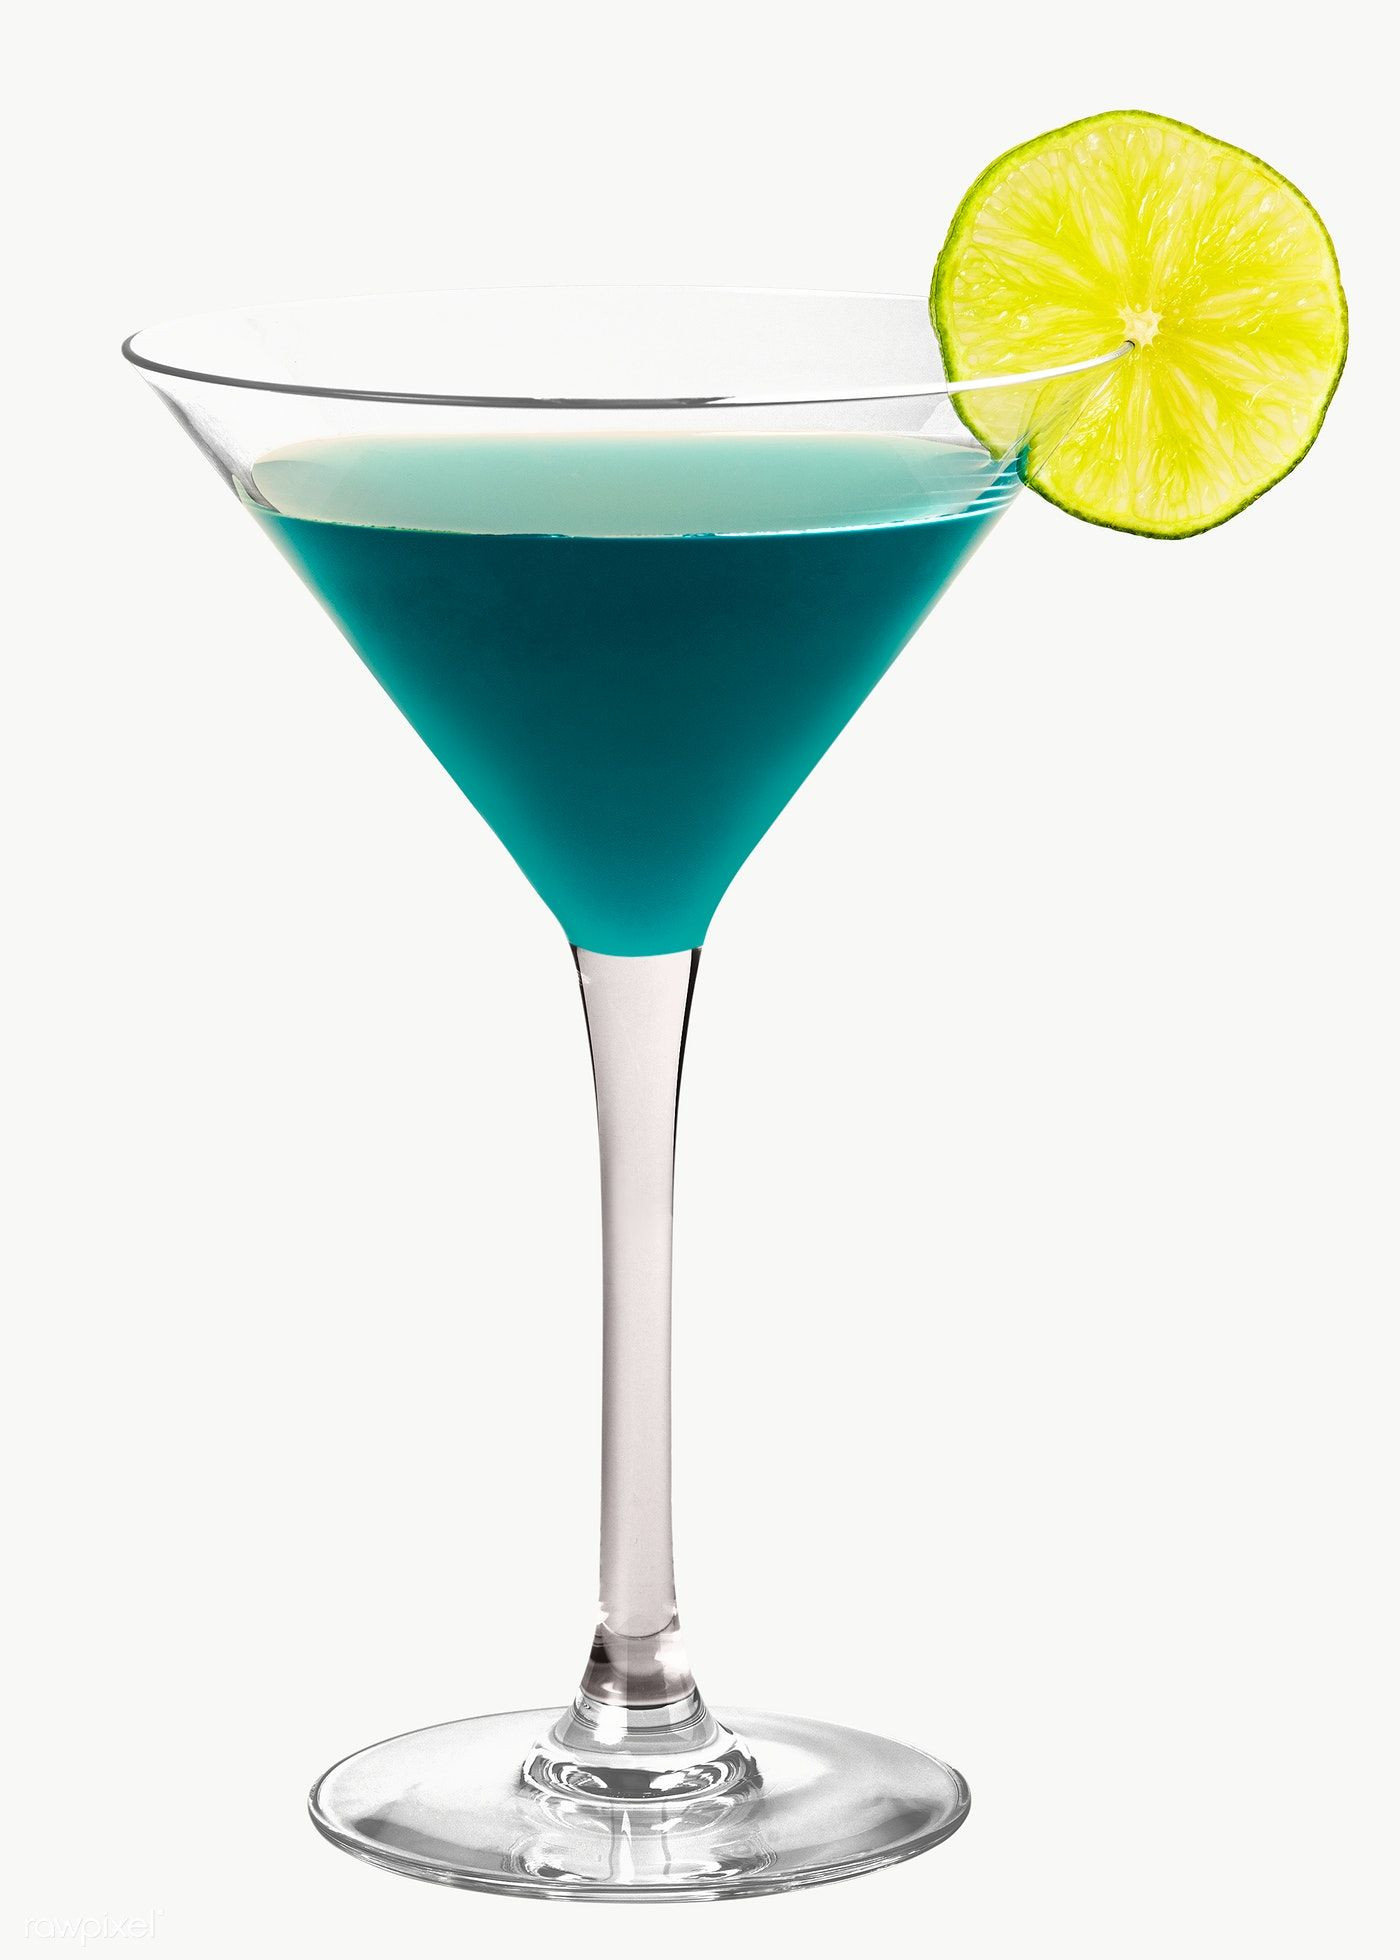 Download Premium Png Of Tropical Blue Lagoon Cocktail Transparent Png In 2020 Blue Lagoon Cocktail Summer Drink Cocktails Tropical Blue